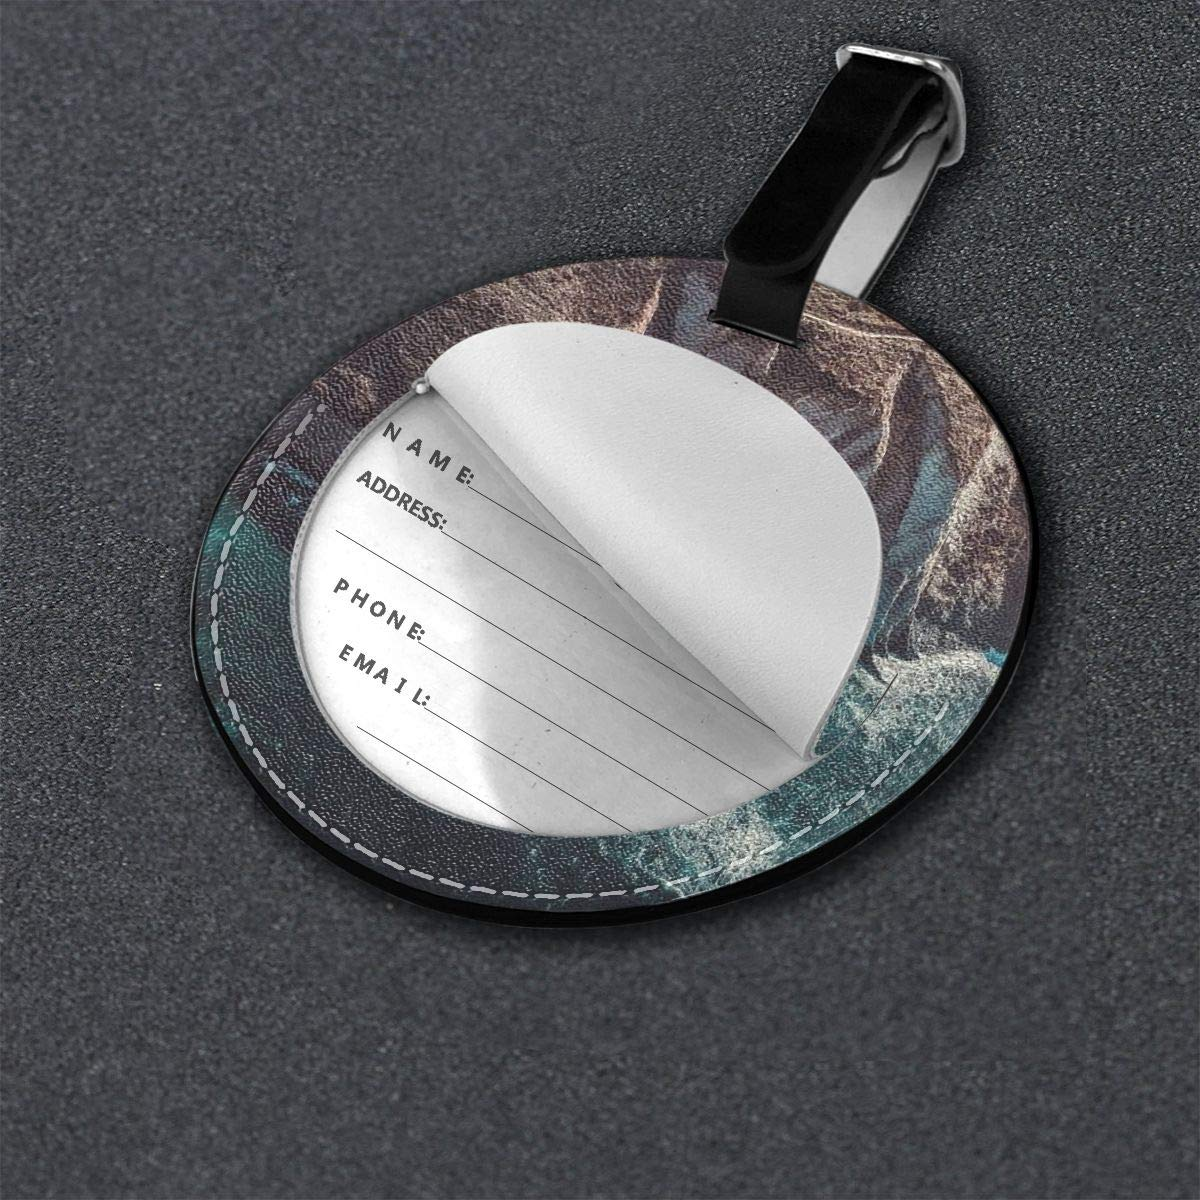 Jinsshop 4 PCS Leather Luggage Tag With Name ID Card Perfect To Quickly Spot Luggage Suitcase Aerial Shot-bird S Eye View